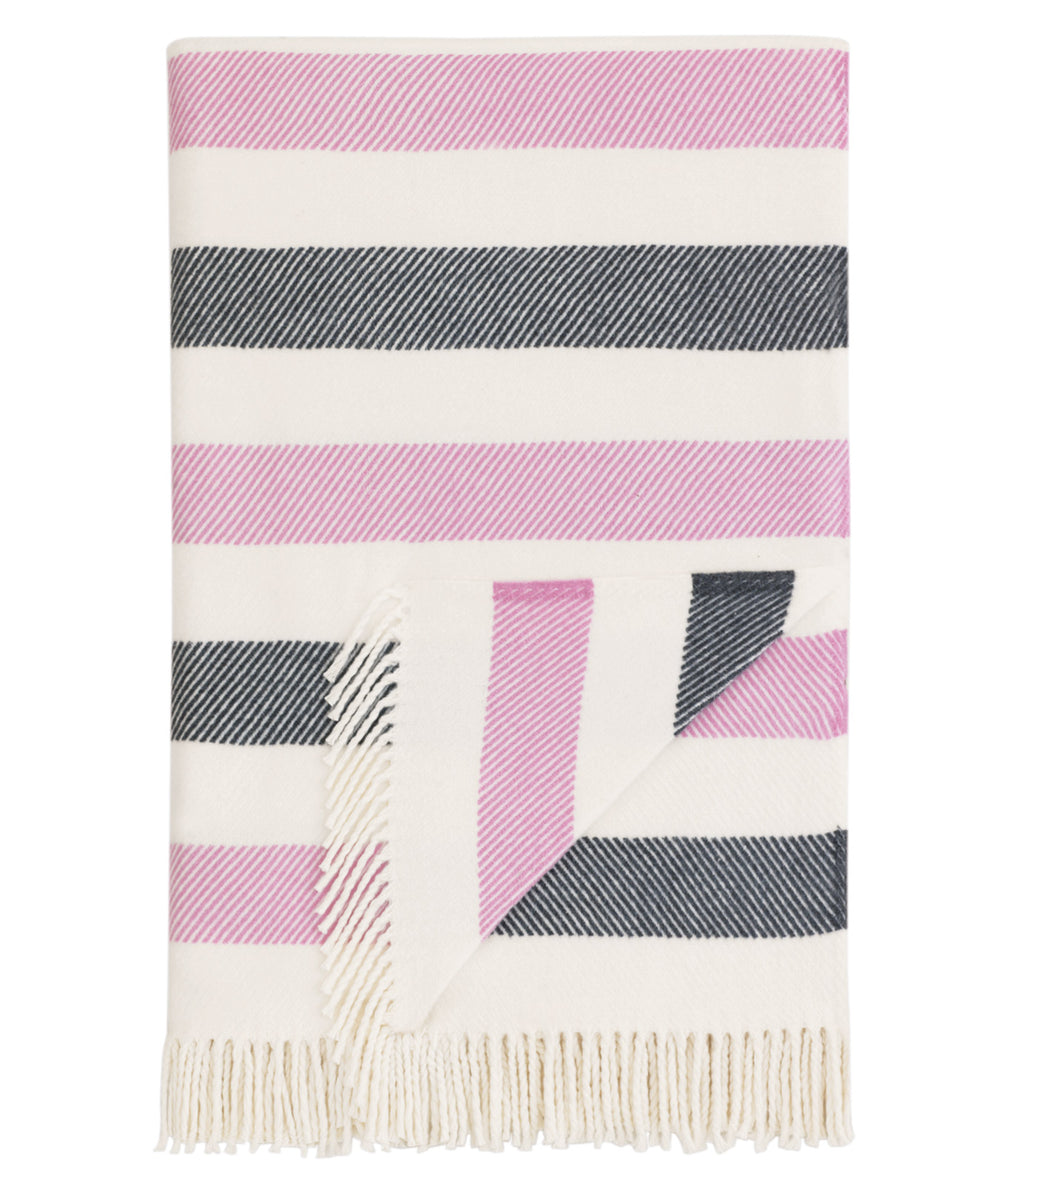 Multicolored Stripe Rustic Cotton Blend Throw With Tassels